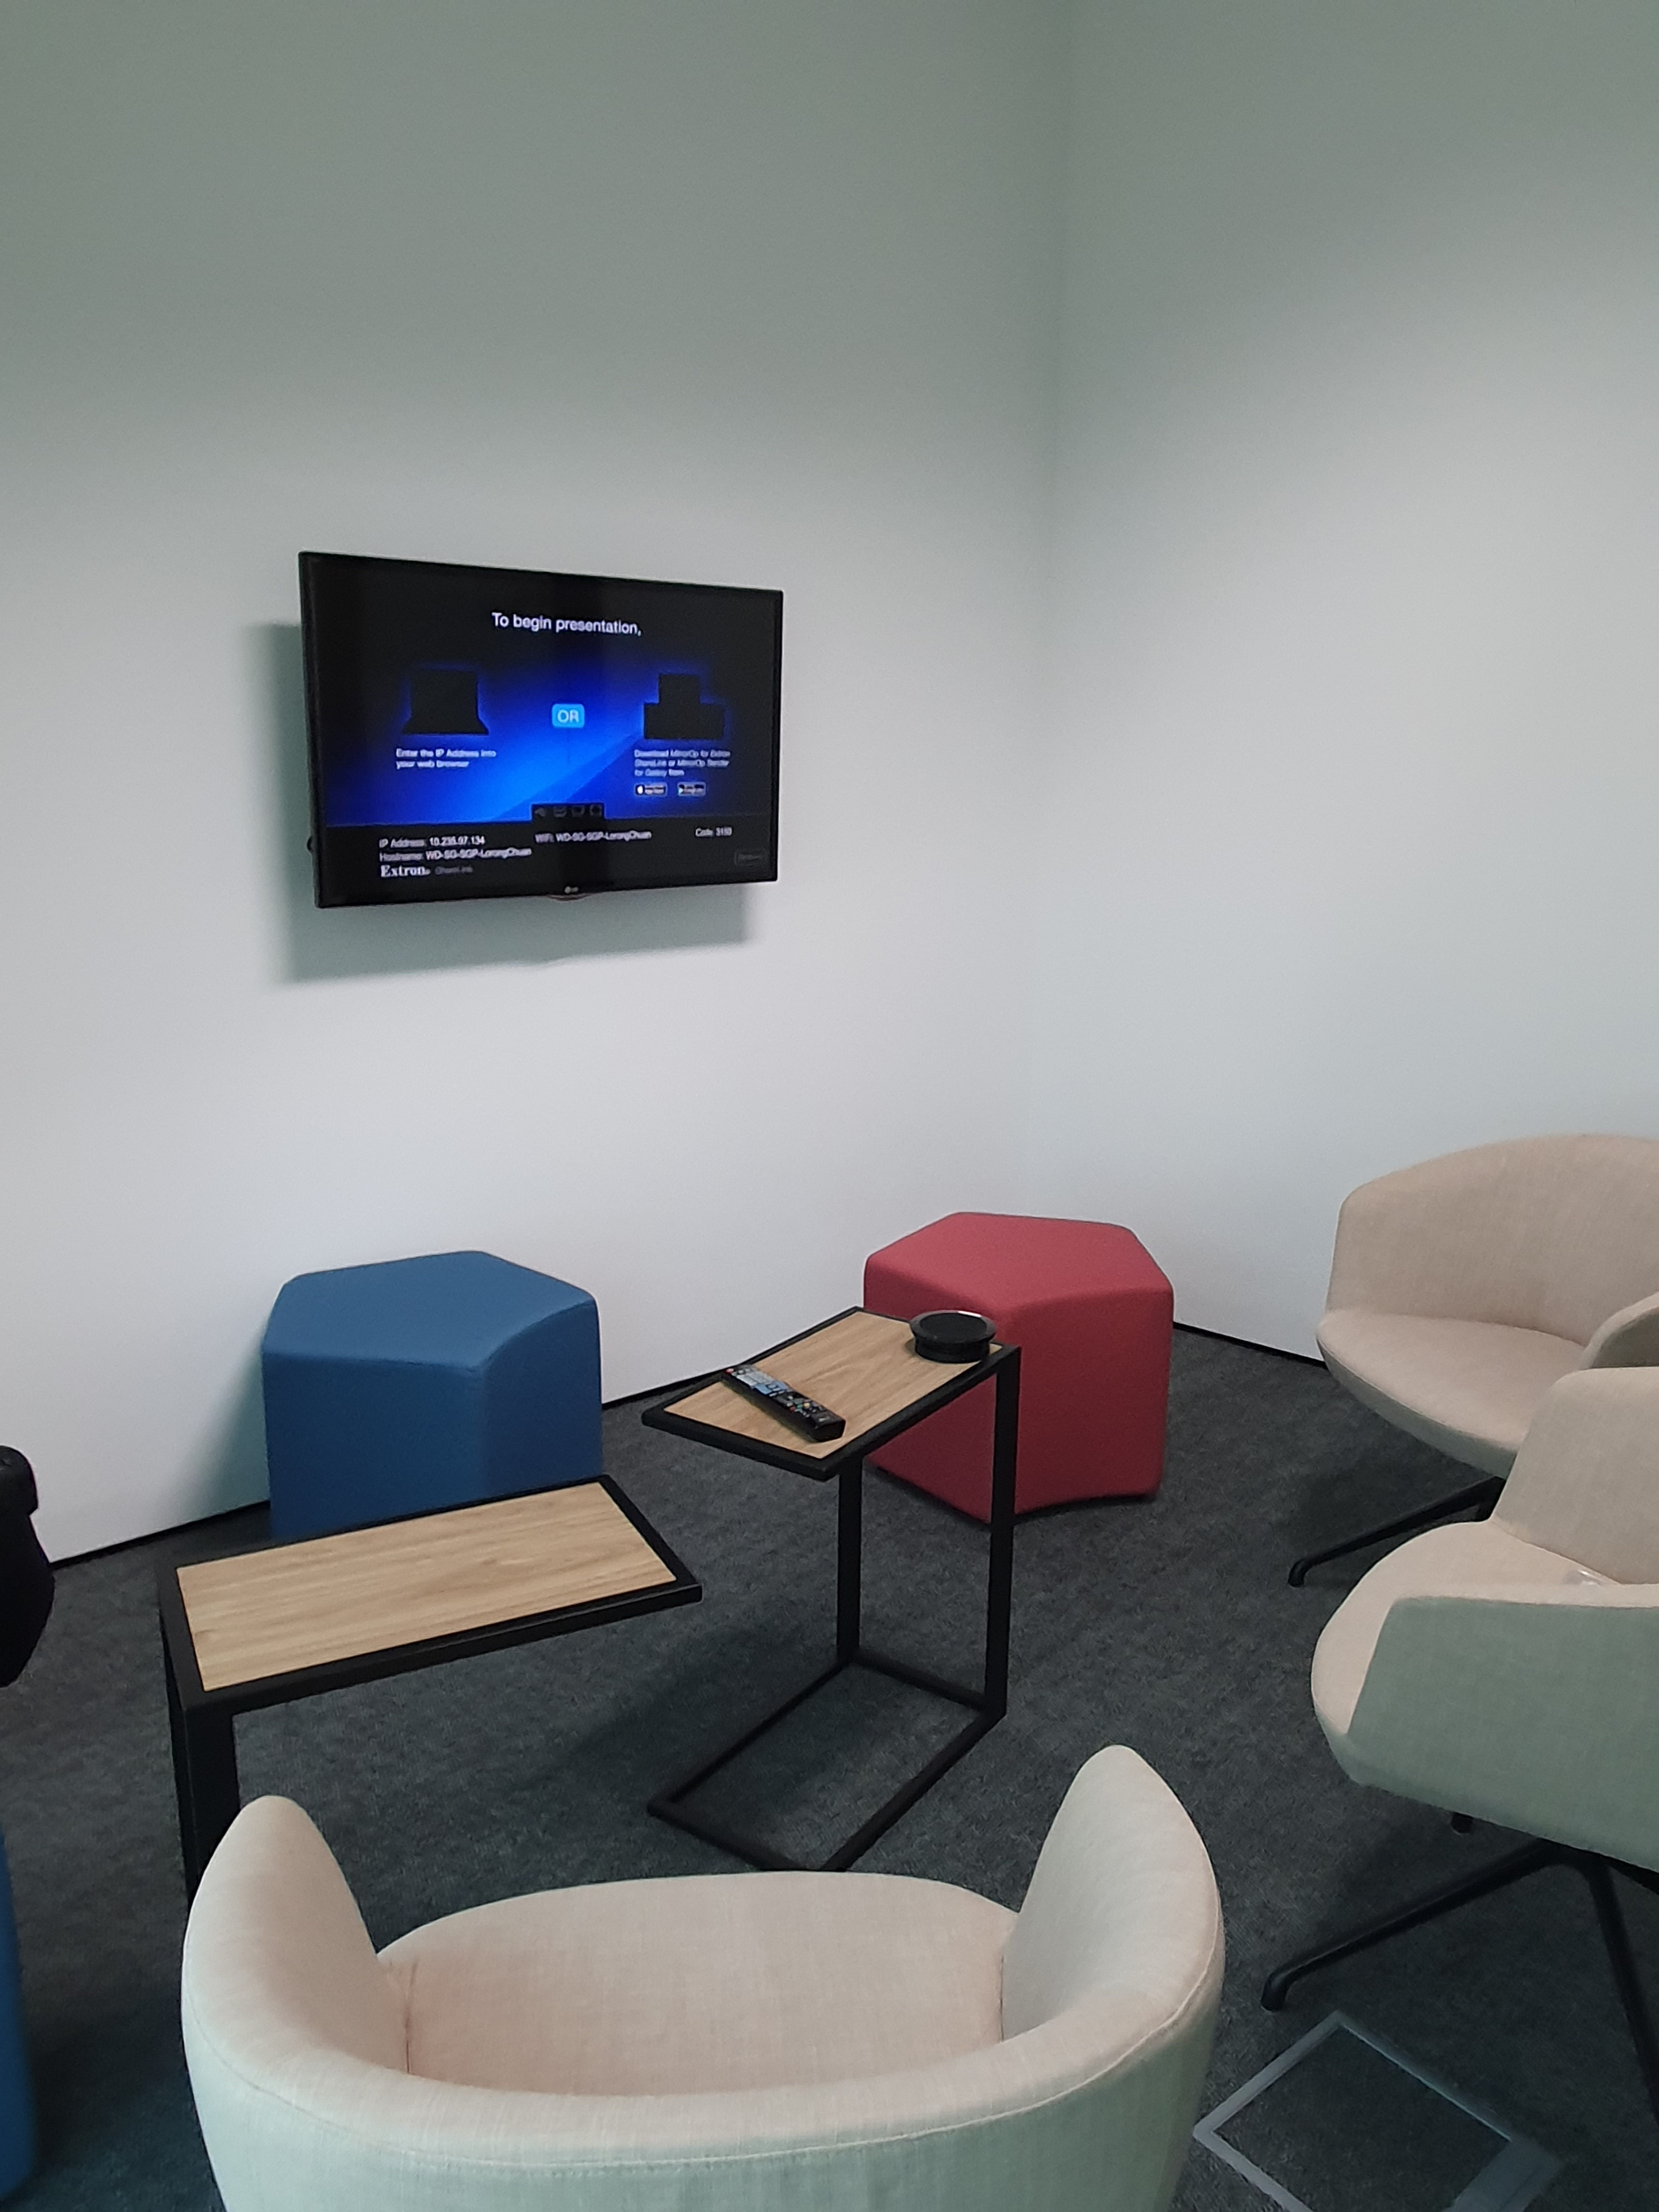 Think Tank rooms have the same wireless and collaboration system capabilities as the board rooms.